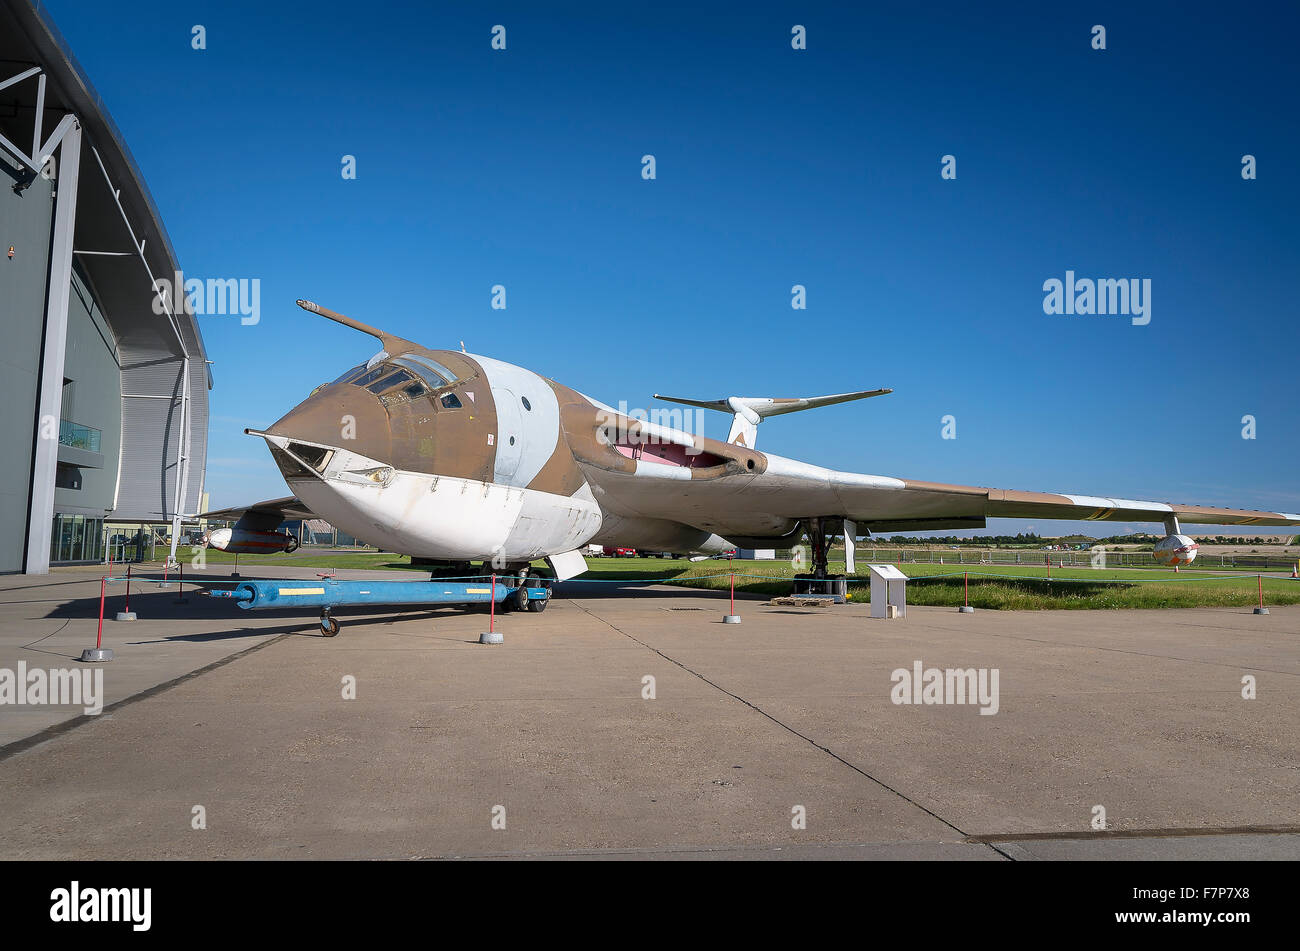 Handley Page Victor V bomber at Duxford museum - Stock Image